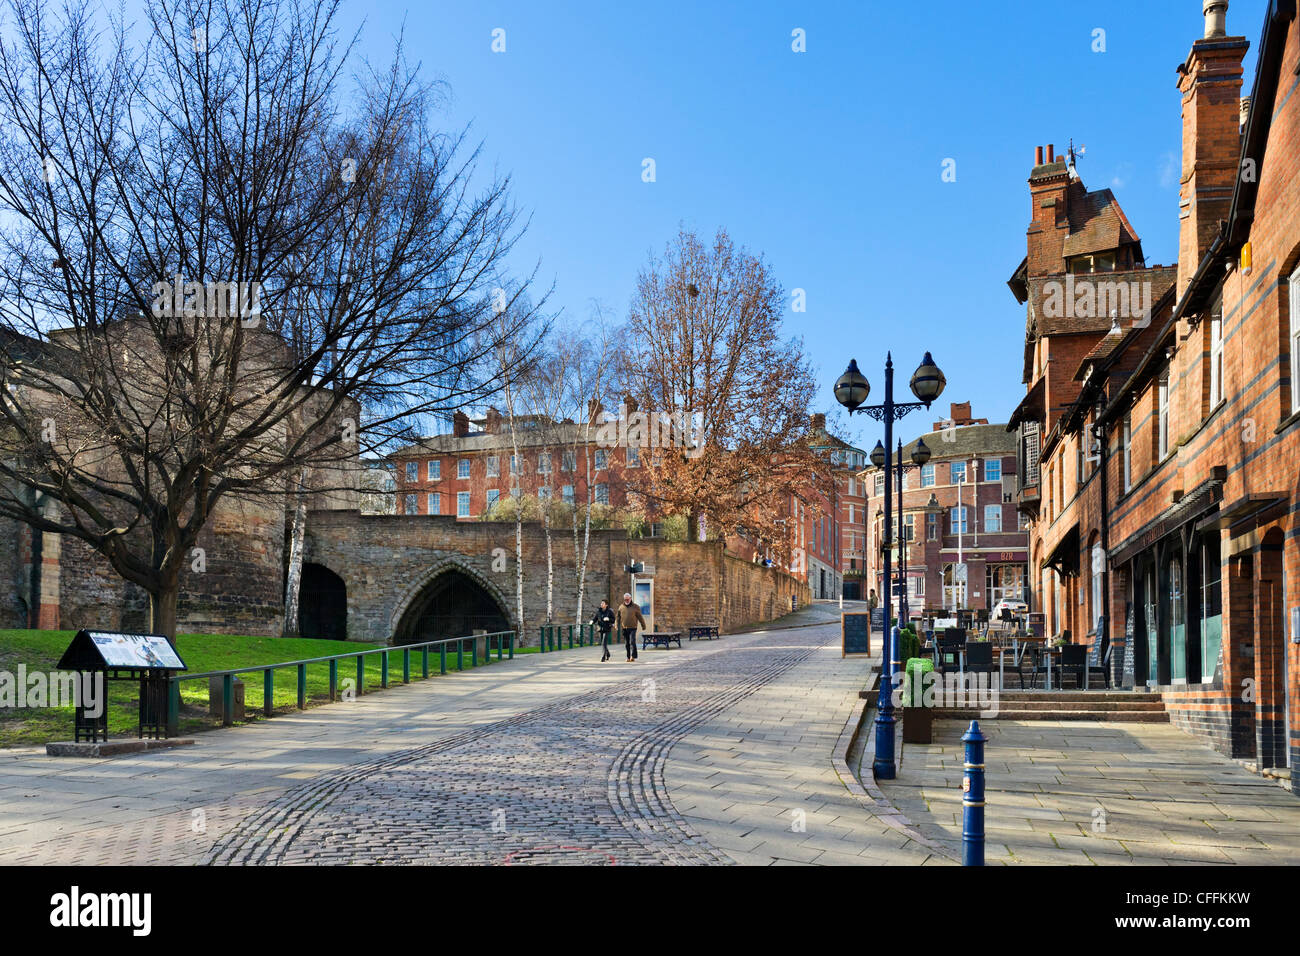 Castle Road with the walls of Nottingham Castle to the left, Nottingham, Nottinghamshire, England, UK - Stock Image